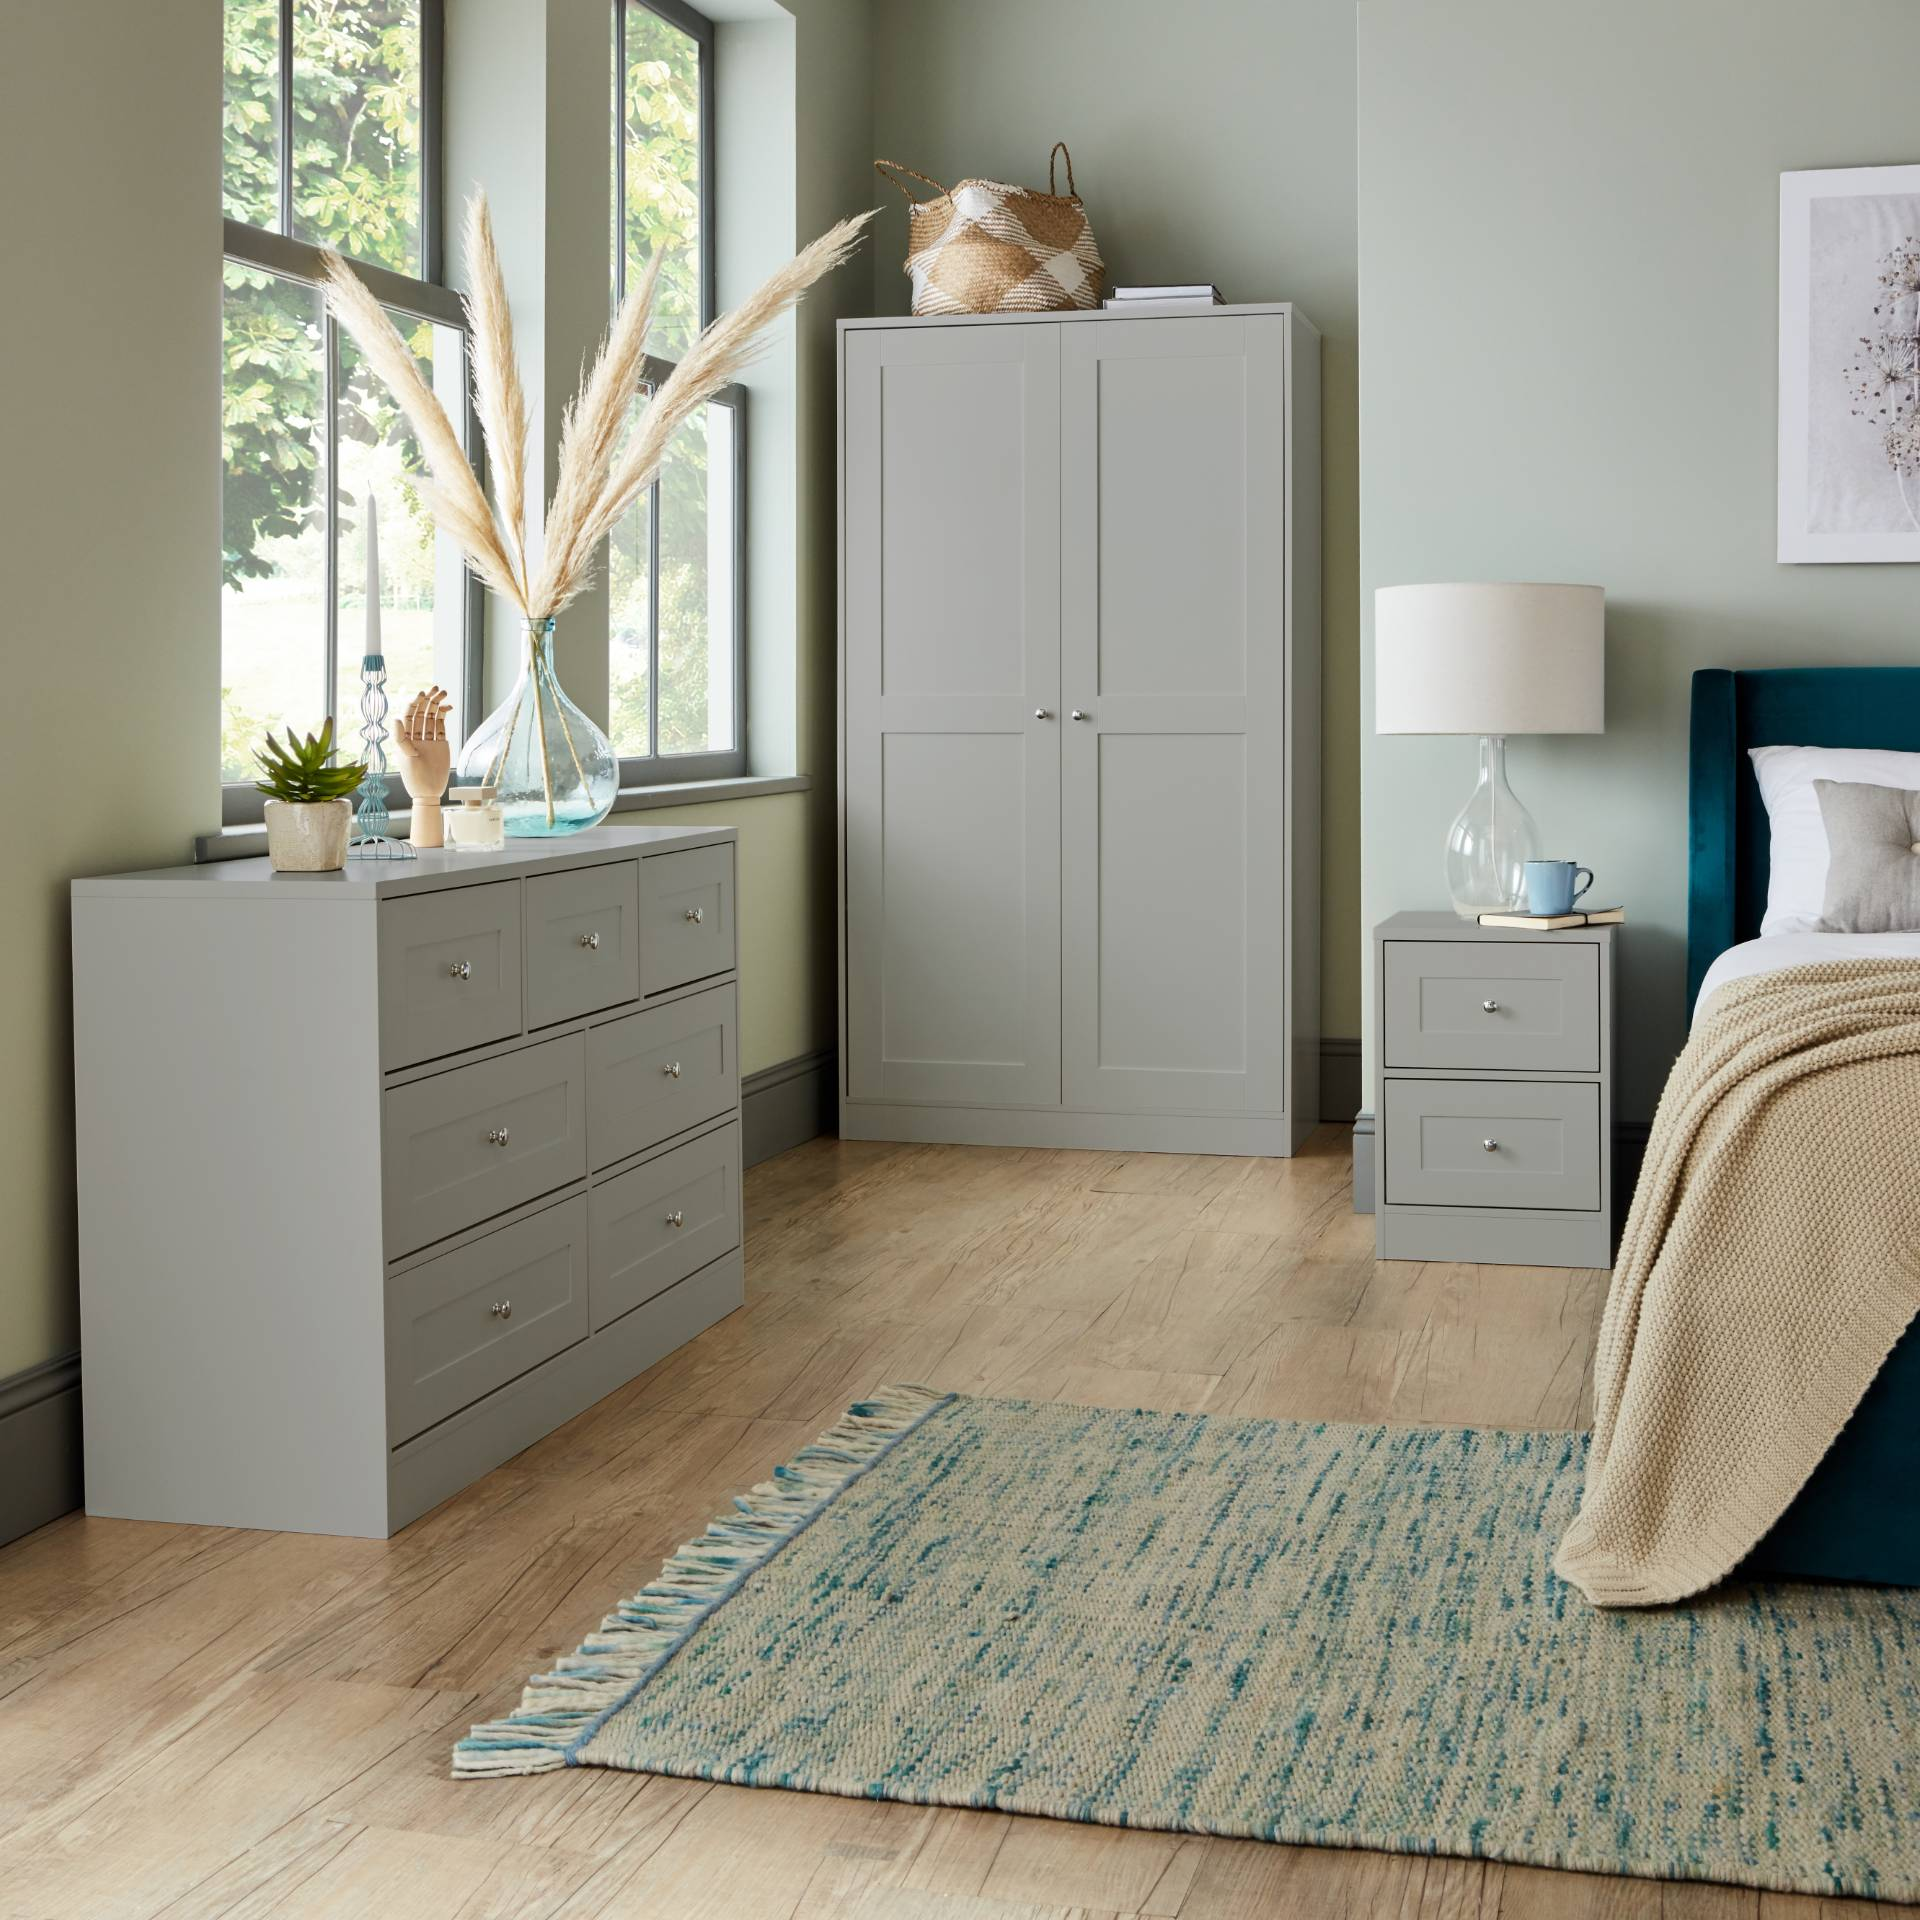 Stevie Shaker Style Bedroom Furniture Set in Grey - Laura James